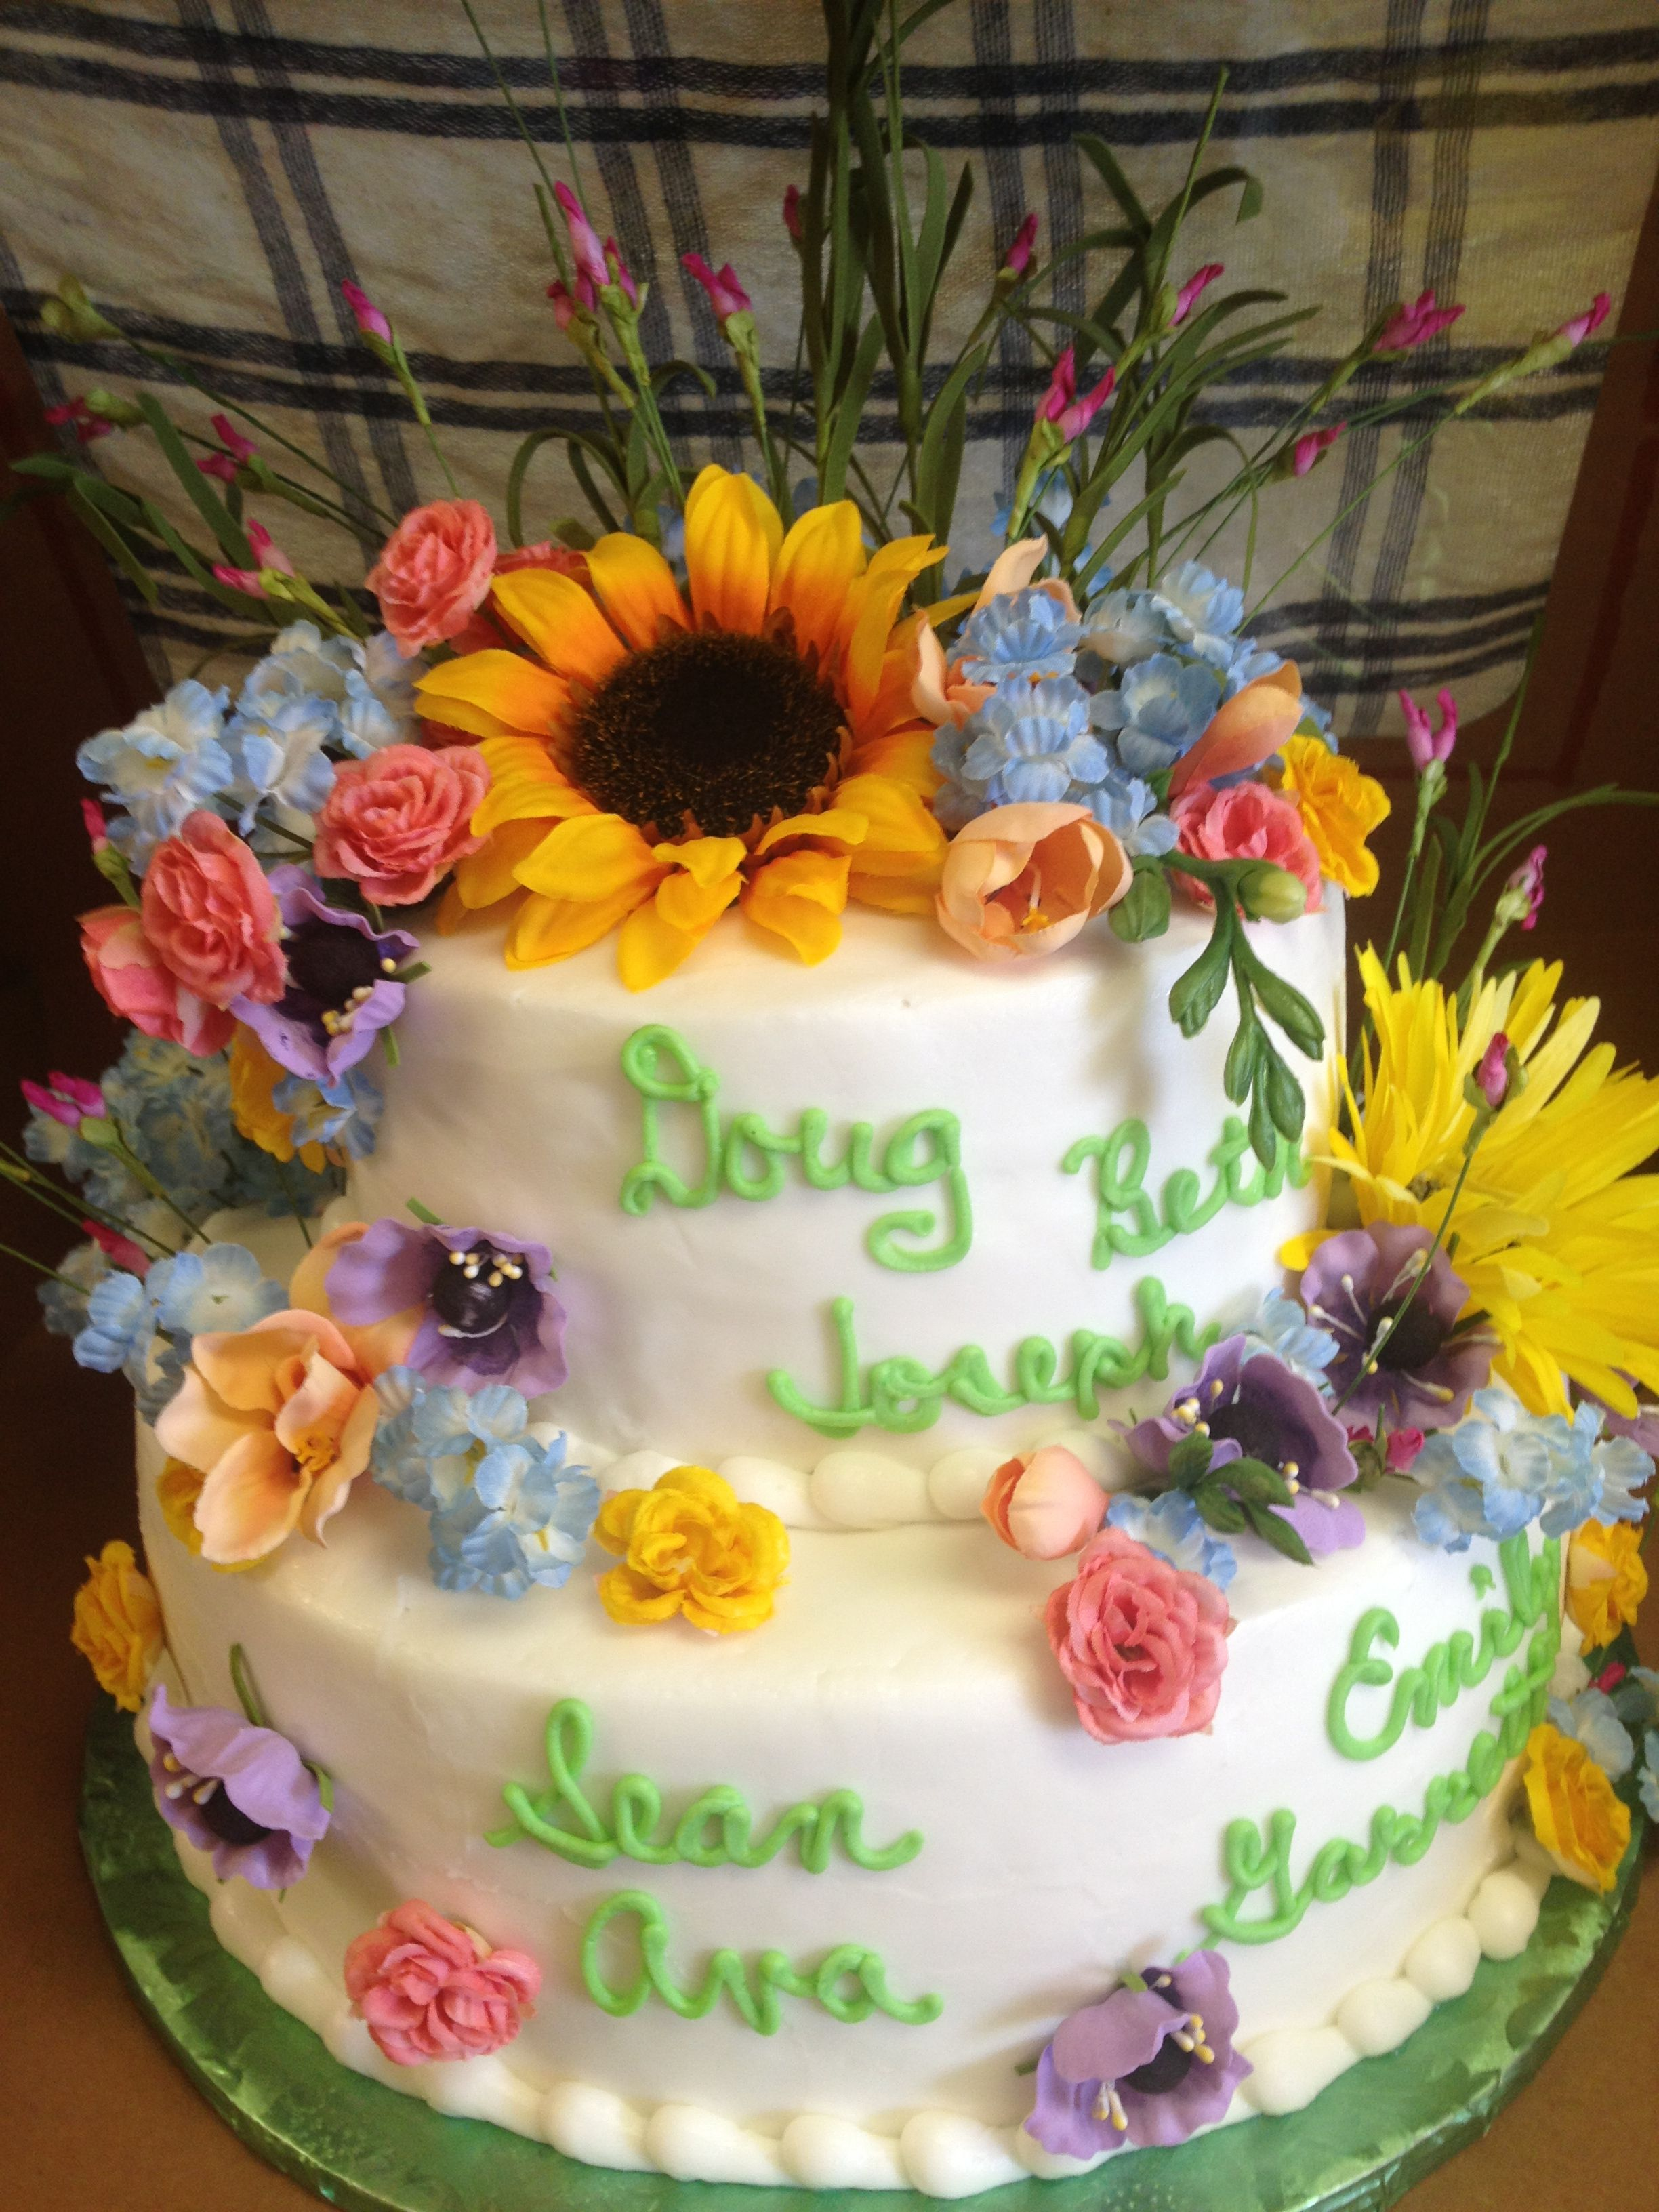 Floral cake decorated in buttercream.